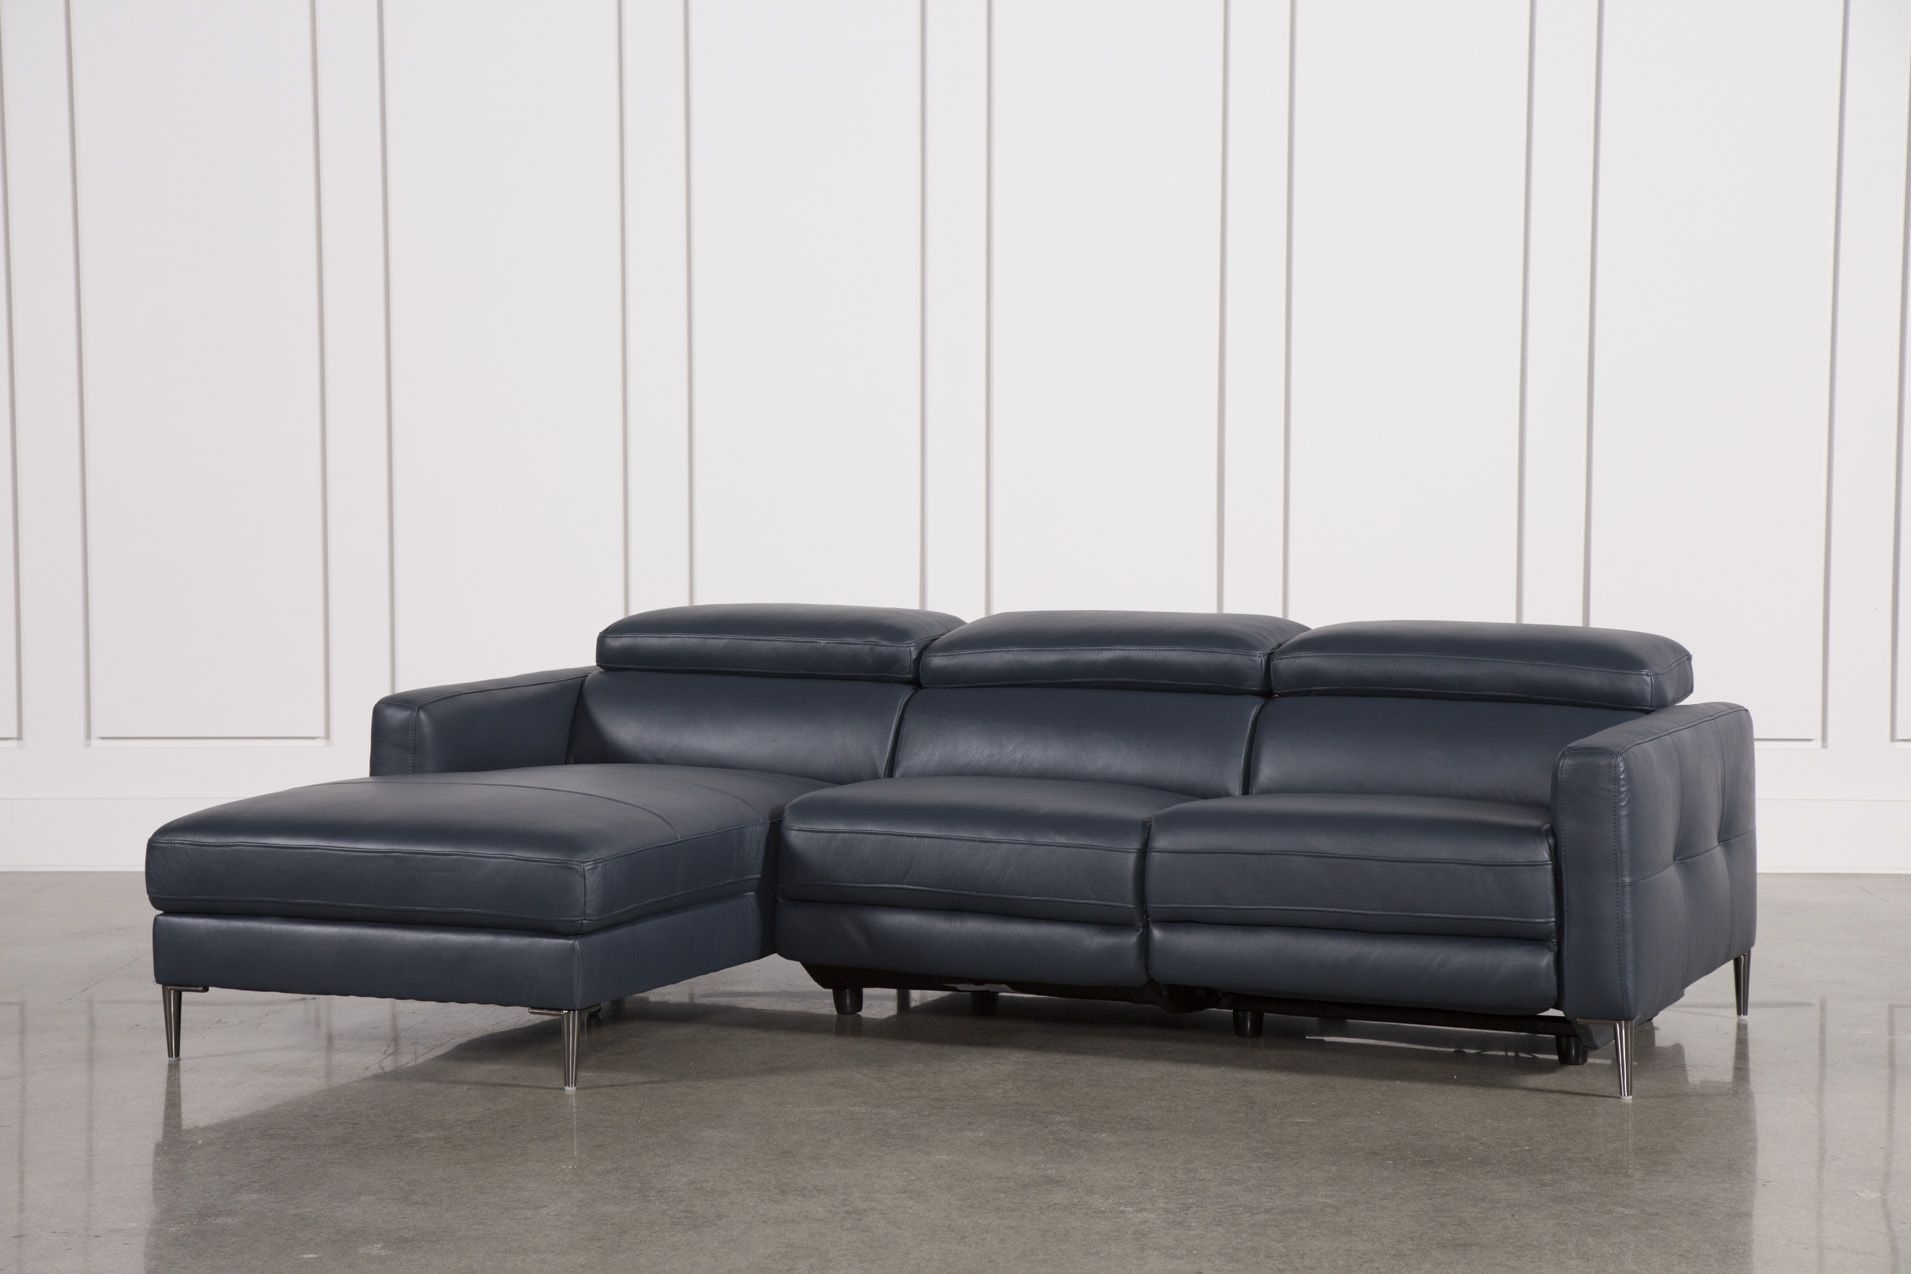 Tara Blue 2 Piece Left Facing Chaise Sofa | Products | Pinterest With Regard To Tenny Dark Grey 2 Piece Left Facing Chaise Sectionals With 2 Headrest (View 7 of 25)